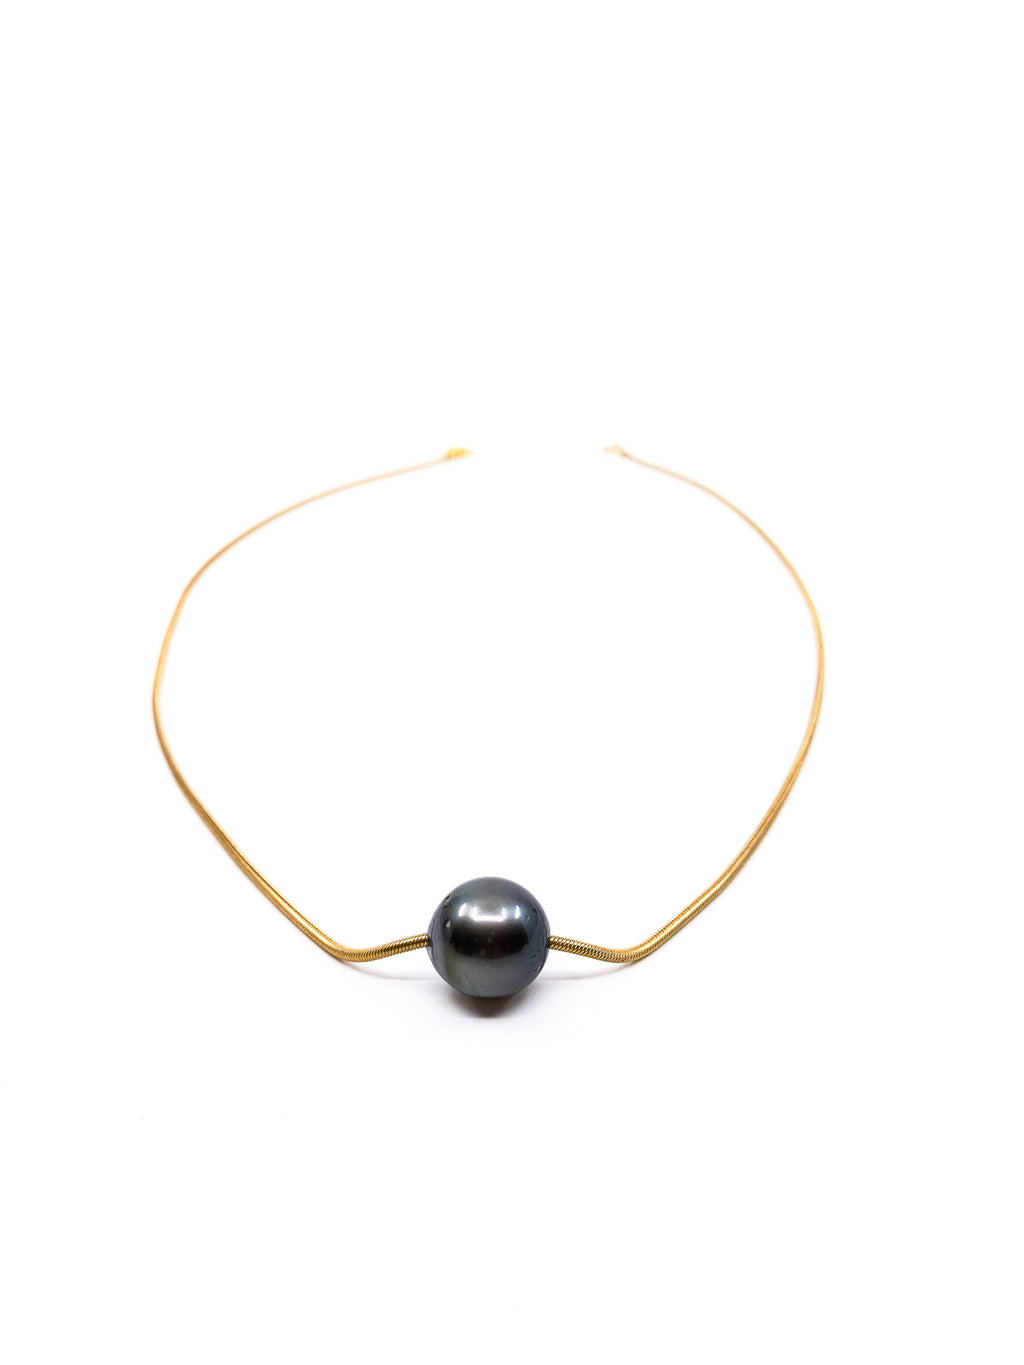 floating Tahitian pearl snake chain necklace by eve black jewelry made in Hawaii